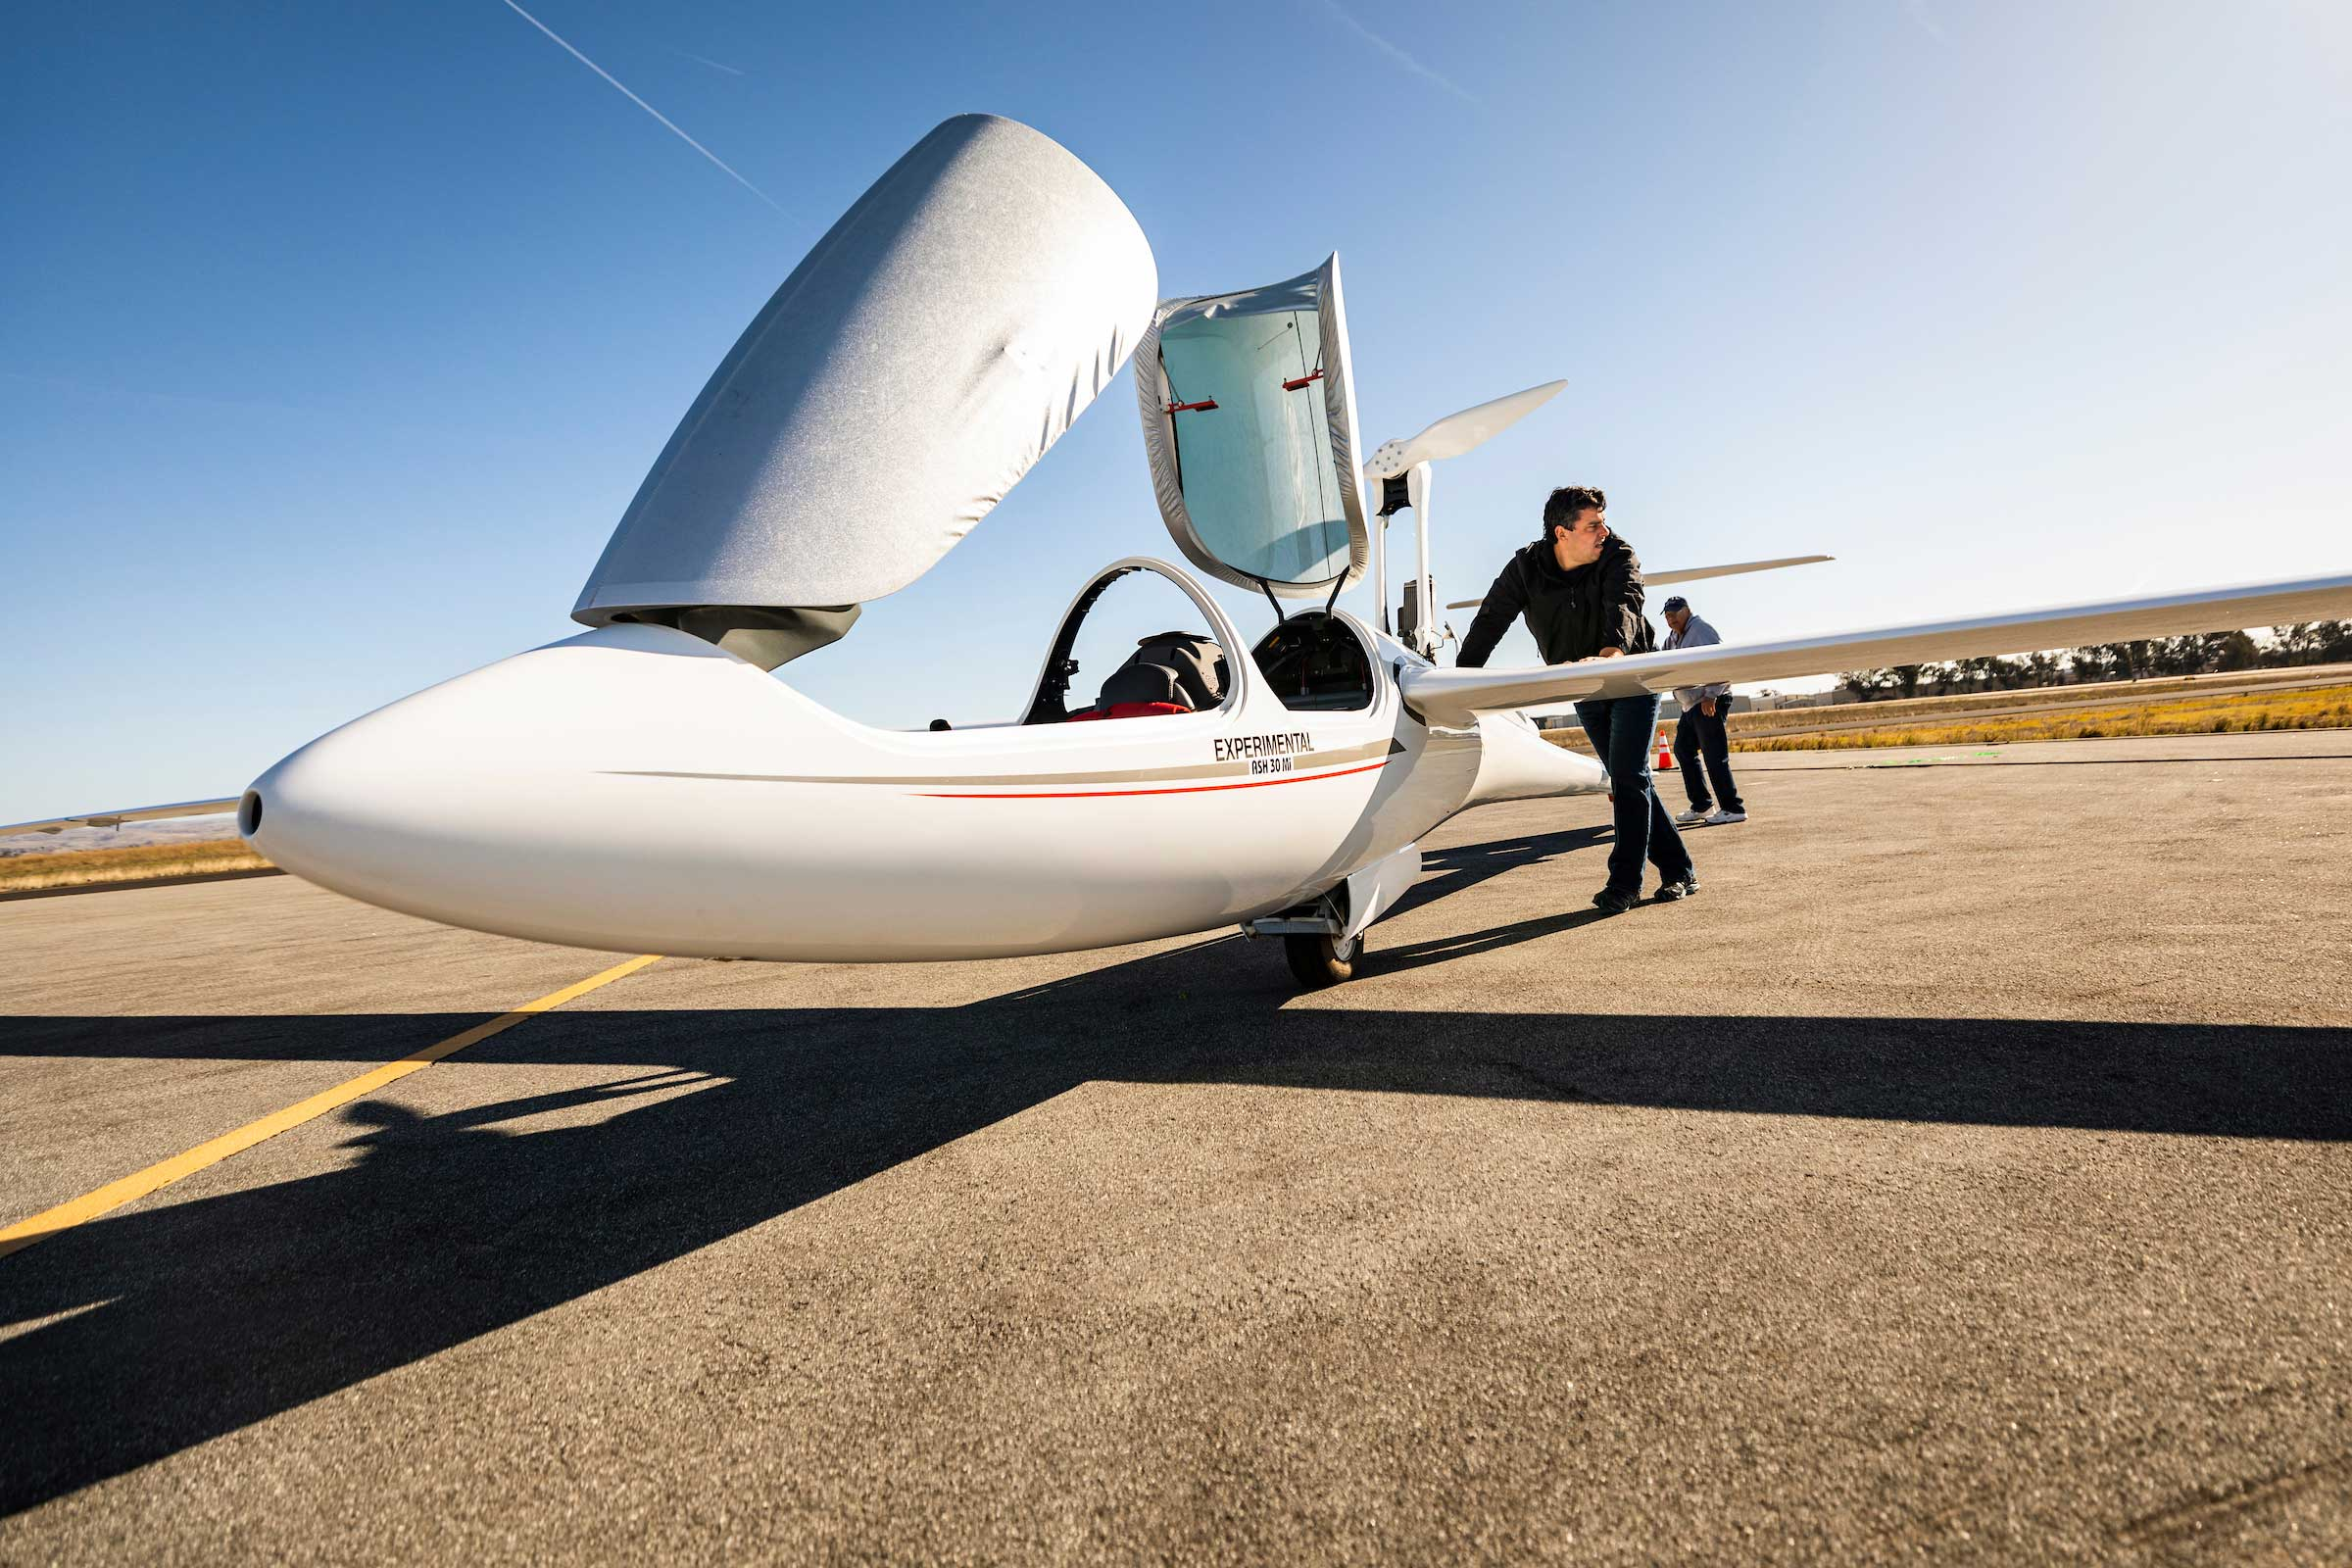 Paulo Iscold, an associate professor in the Aerospace Engineering Department, led the proposal to for Cal Poly to work with the Air Force Research Lab on technologies for unmanned aerial research. Iscold has designed several planes, including this glider, which broke several records.